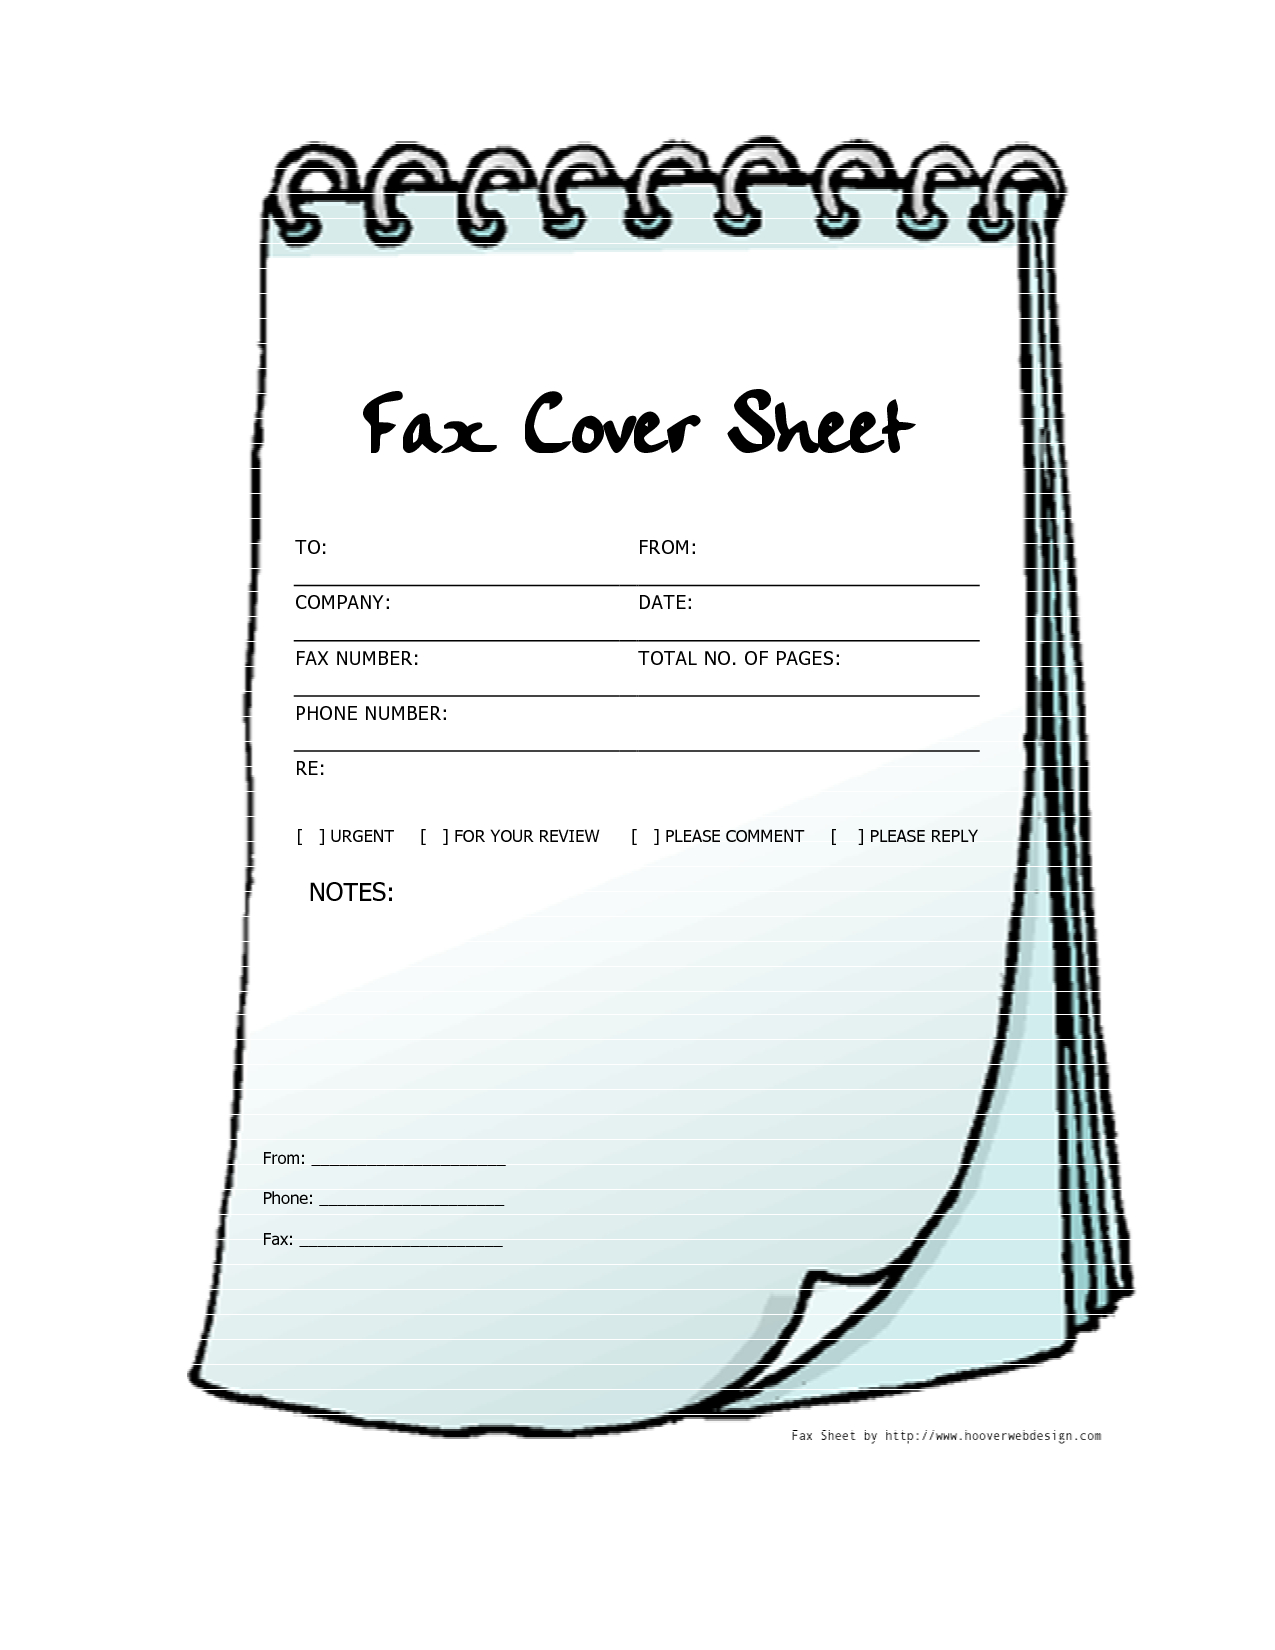 Free Printable Fax Cover Sheets | Free Printable Fax Cover Sheet - Free Printable Fax Cover Sheet Pdf